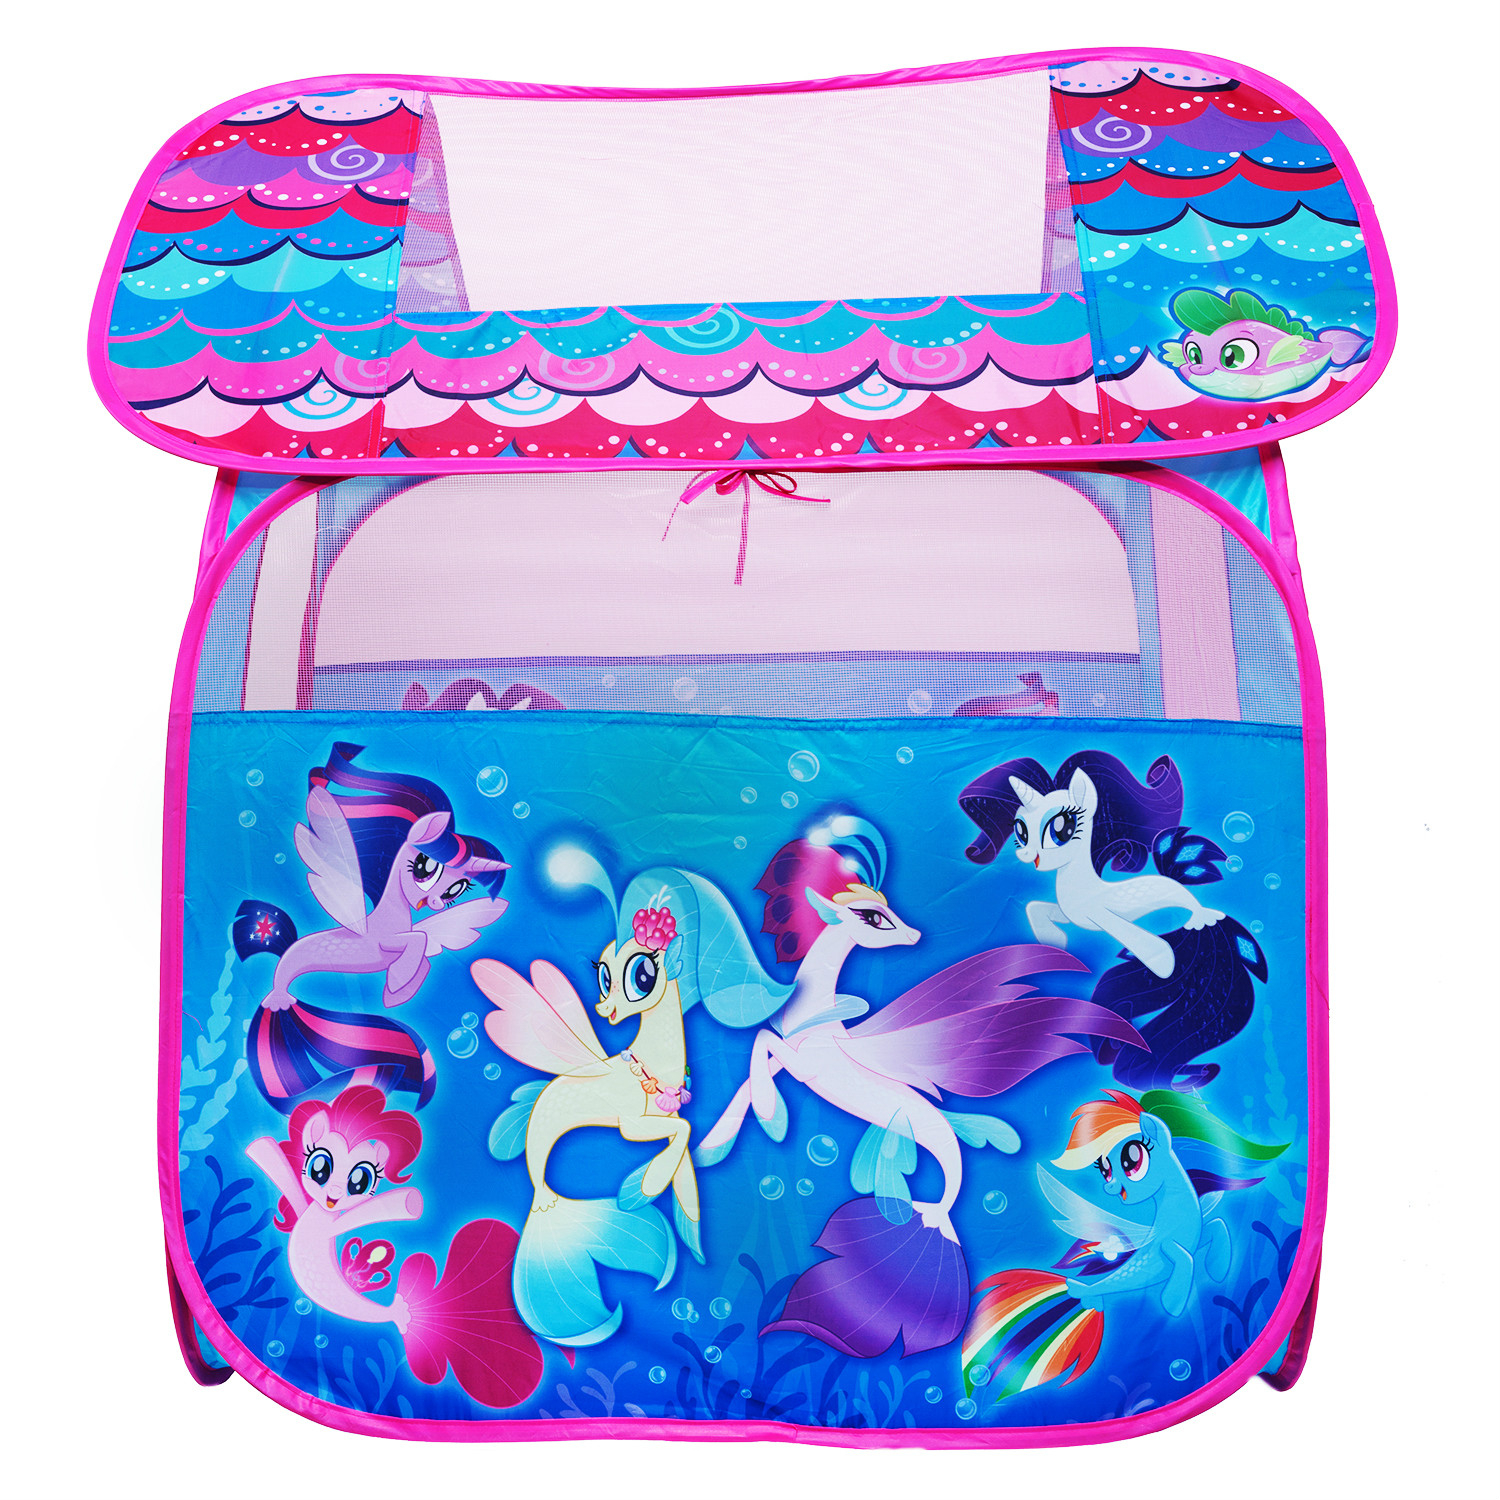 My Little Pony My Little Pony Палатка игровая My Little Pony 83x100x80 см цены